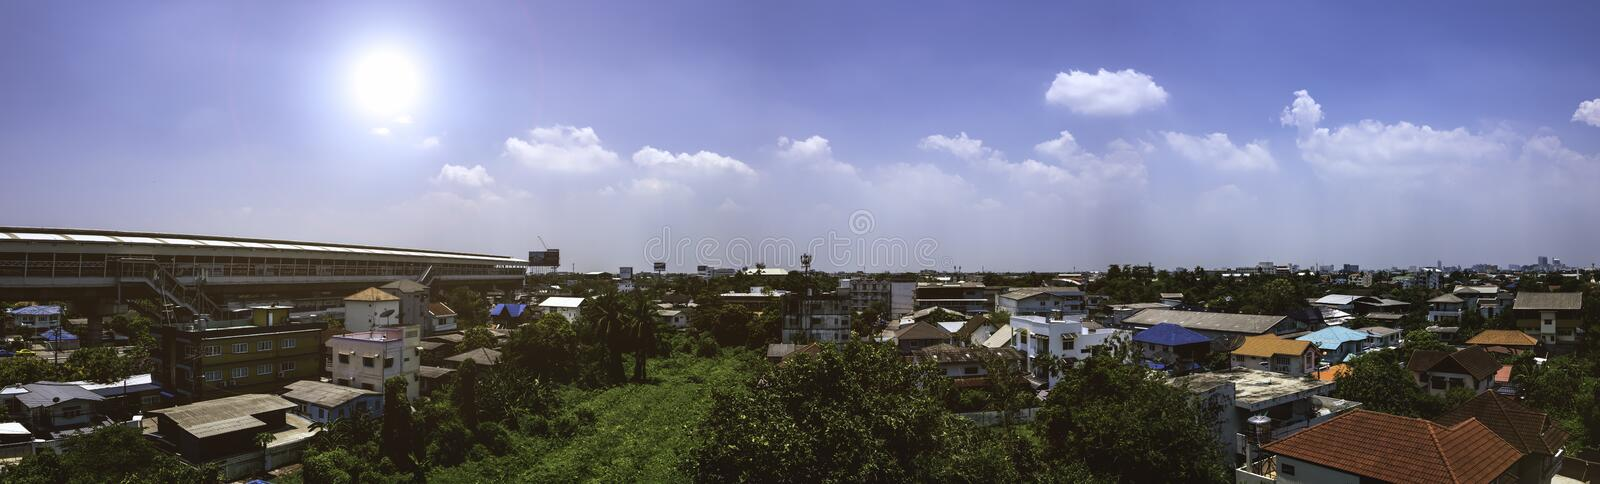 Thailand Bangkok. On 24/04/2019. Panorama city scape house. Afternoon sunshine day clearly weather white cloud and blue sky backgr royalty free stock image